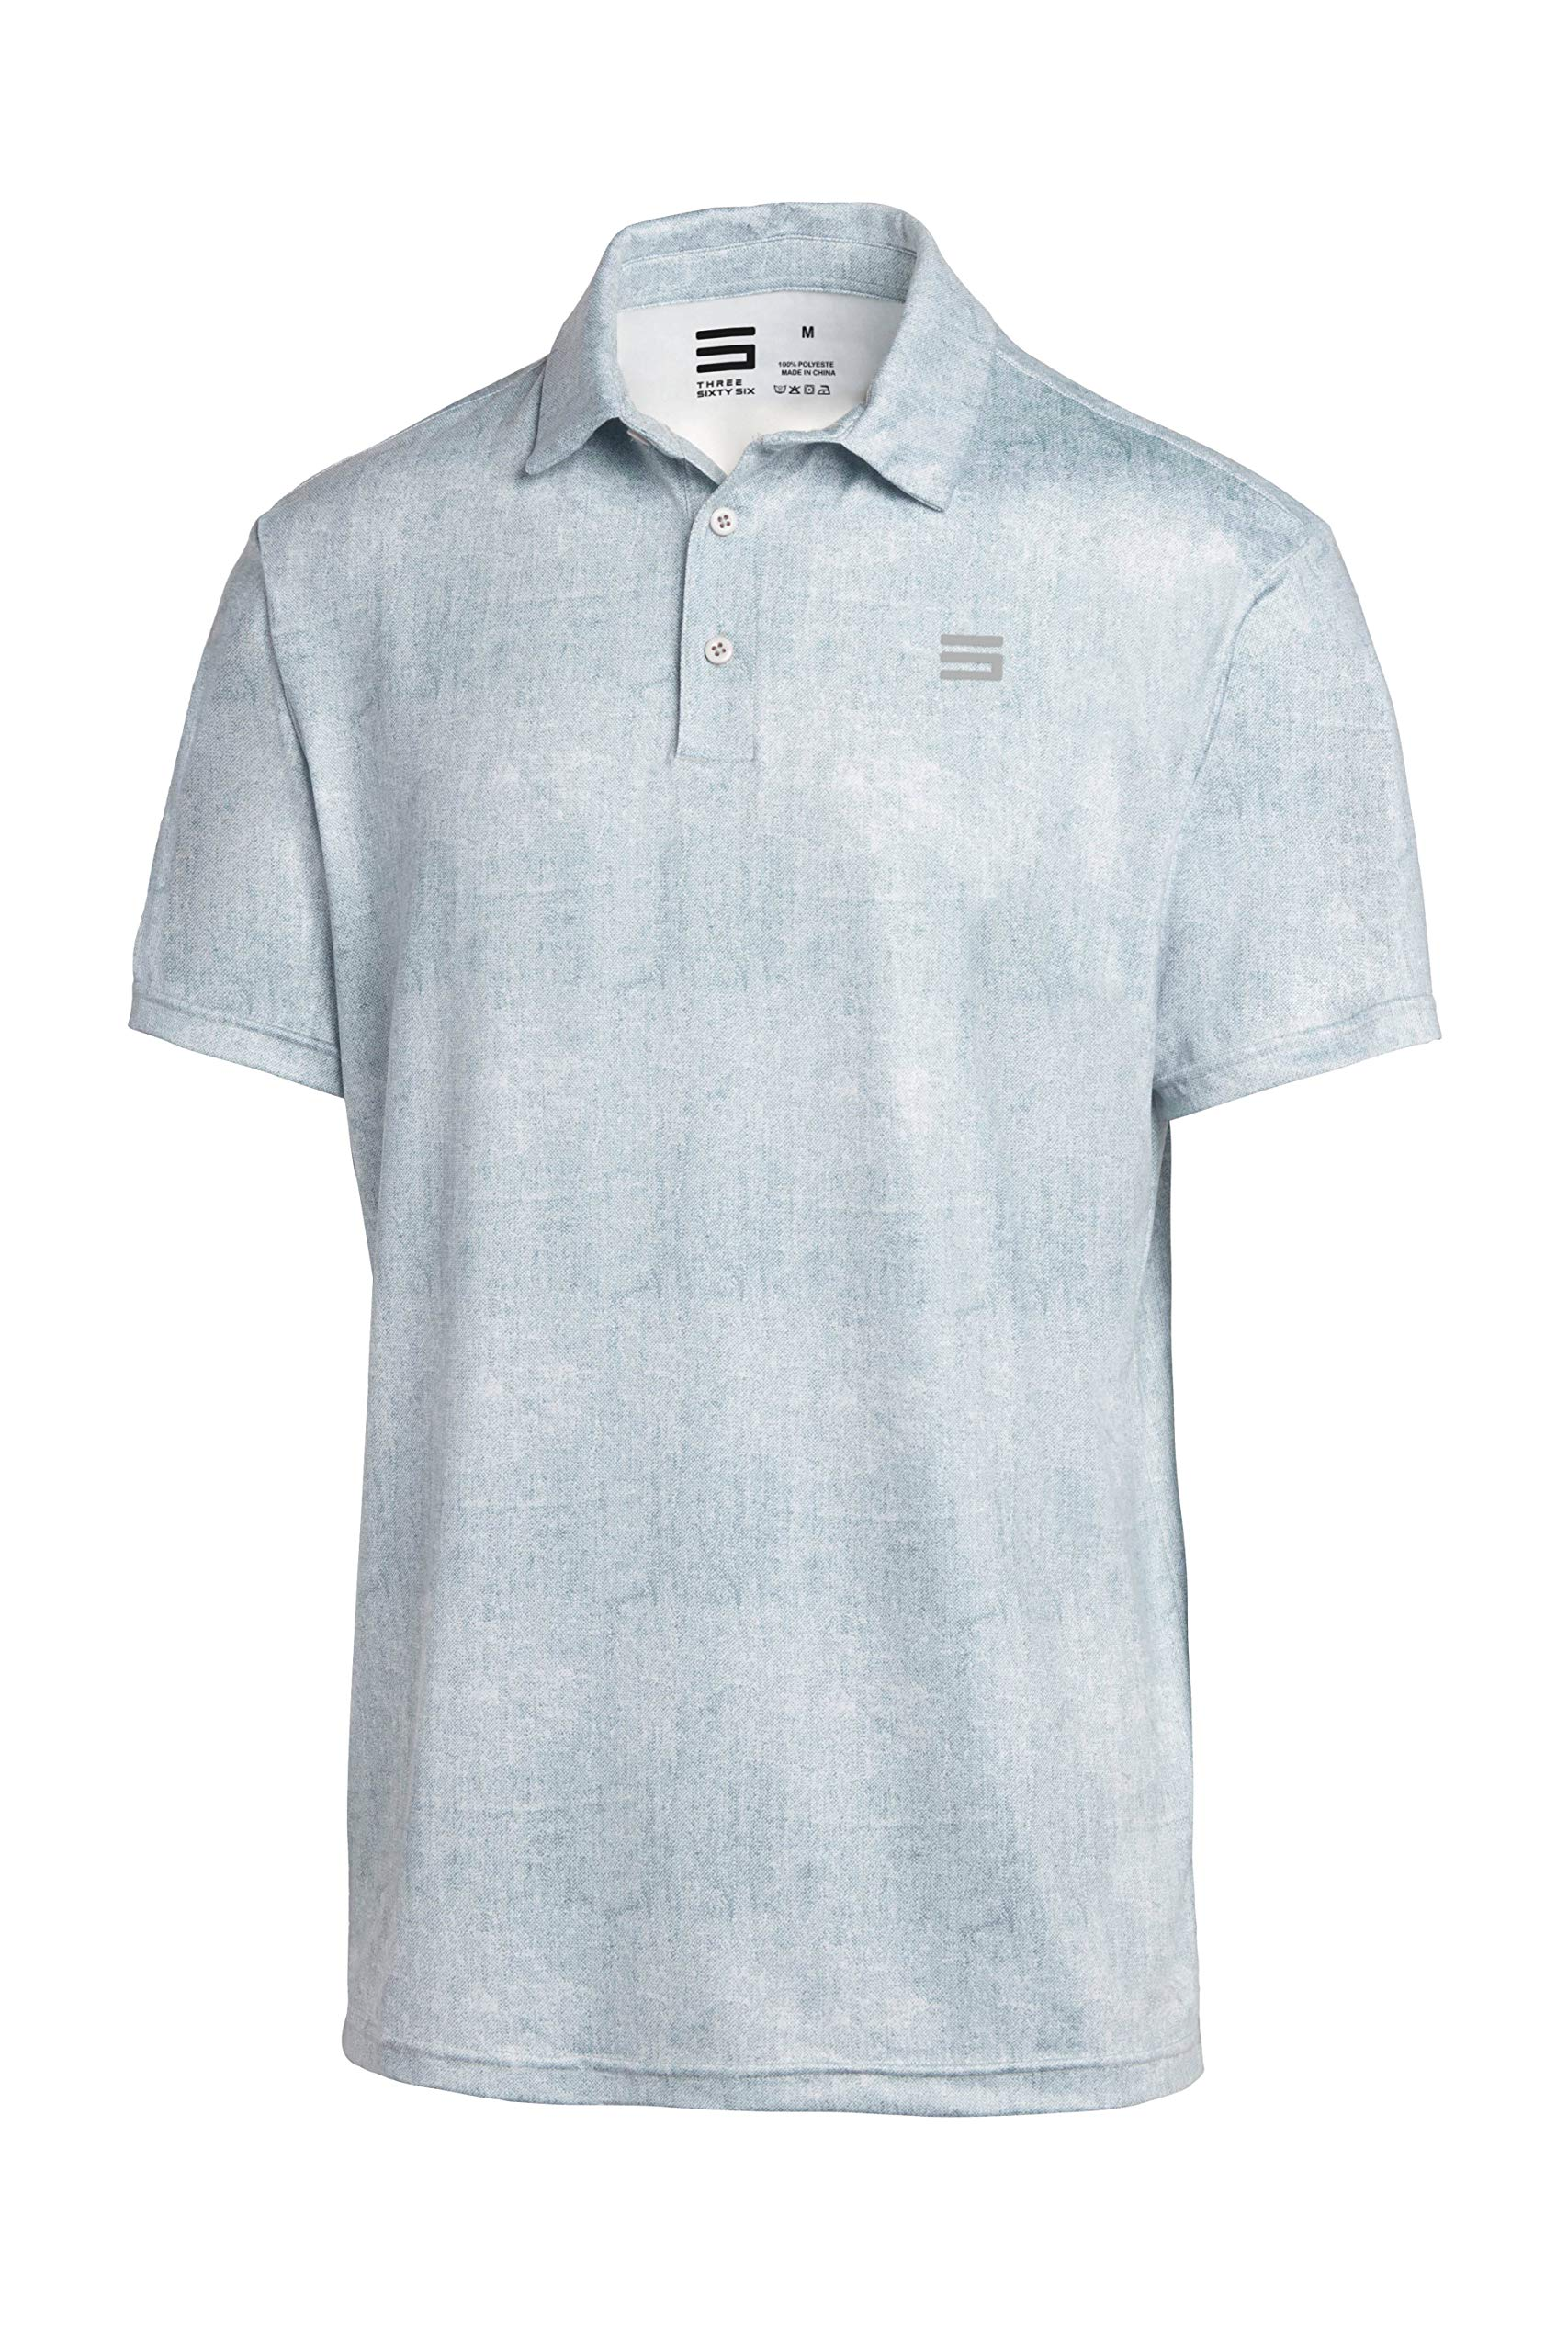 Three Sixty Six Golf Shirts for Men - Dry Fit Short-Sleeve Polo, Athletic Casual Collared T-Shirt Metallic White by Three Sixty Six